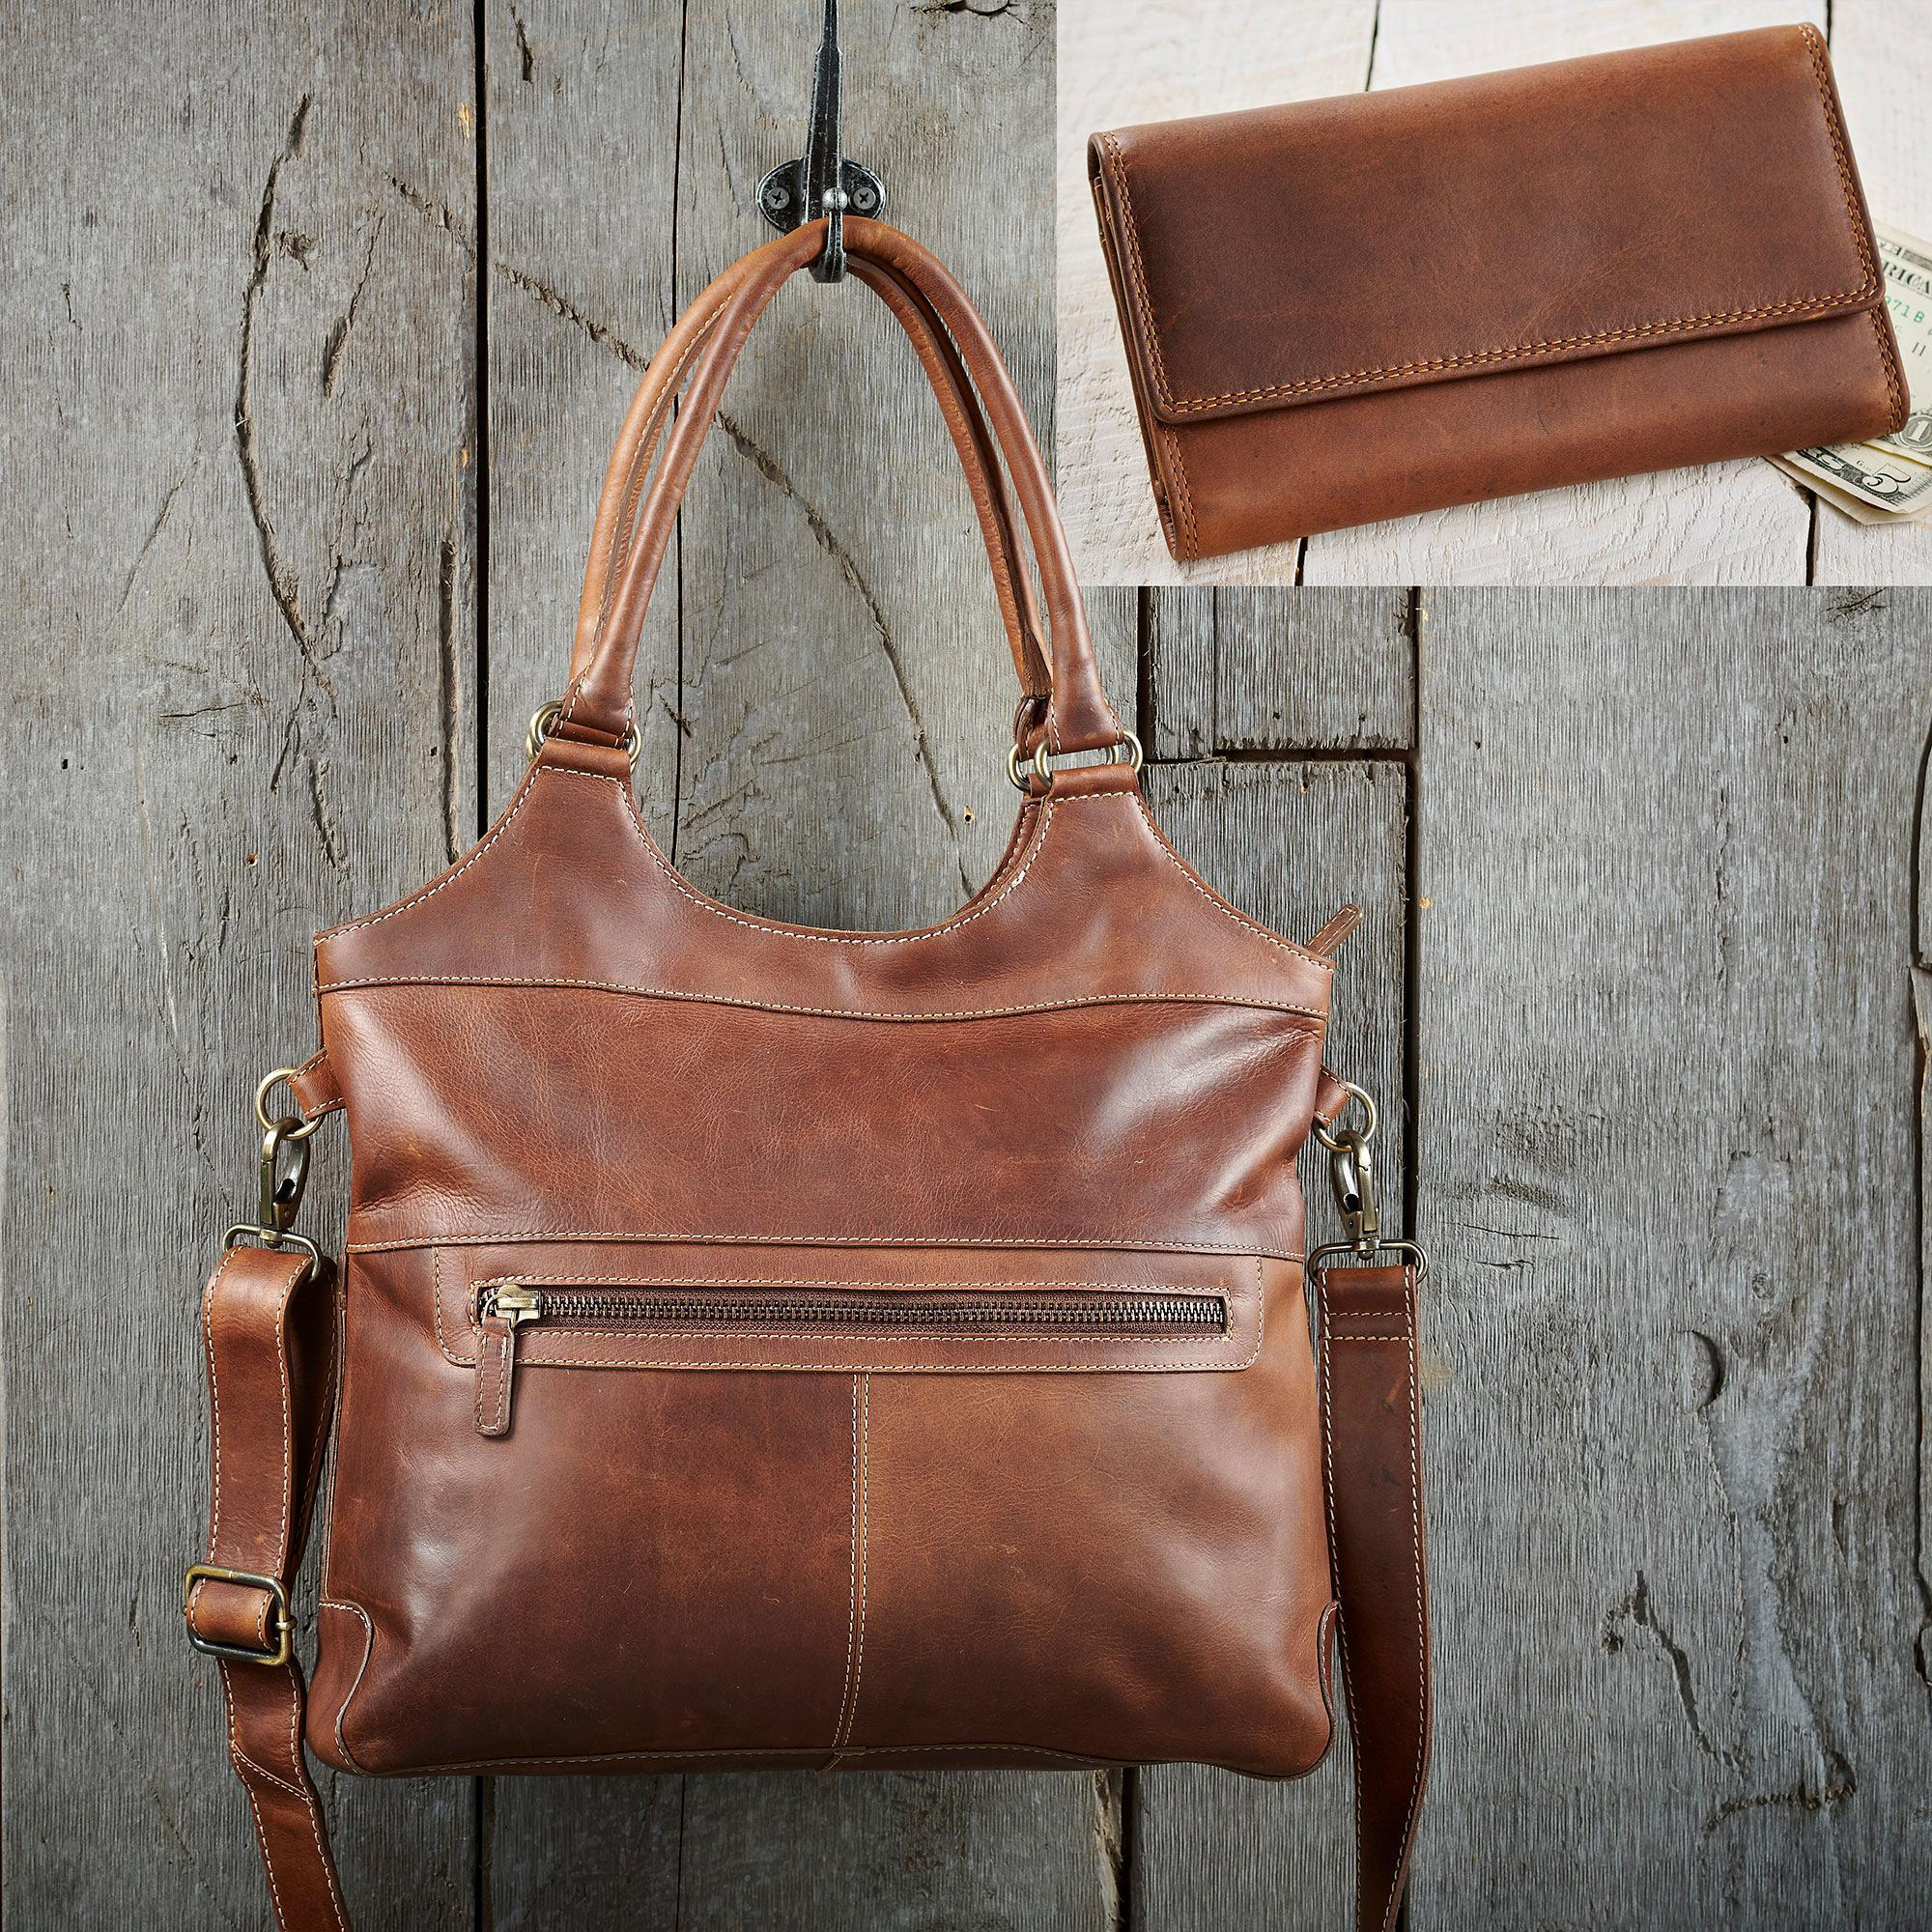 Brown Leather Handbag and Wallet Collection